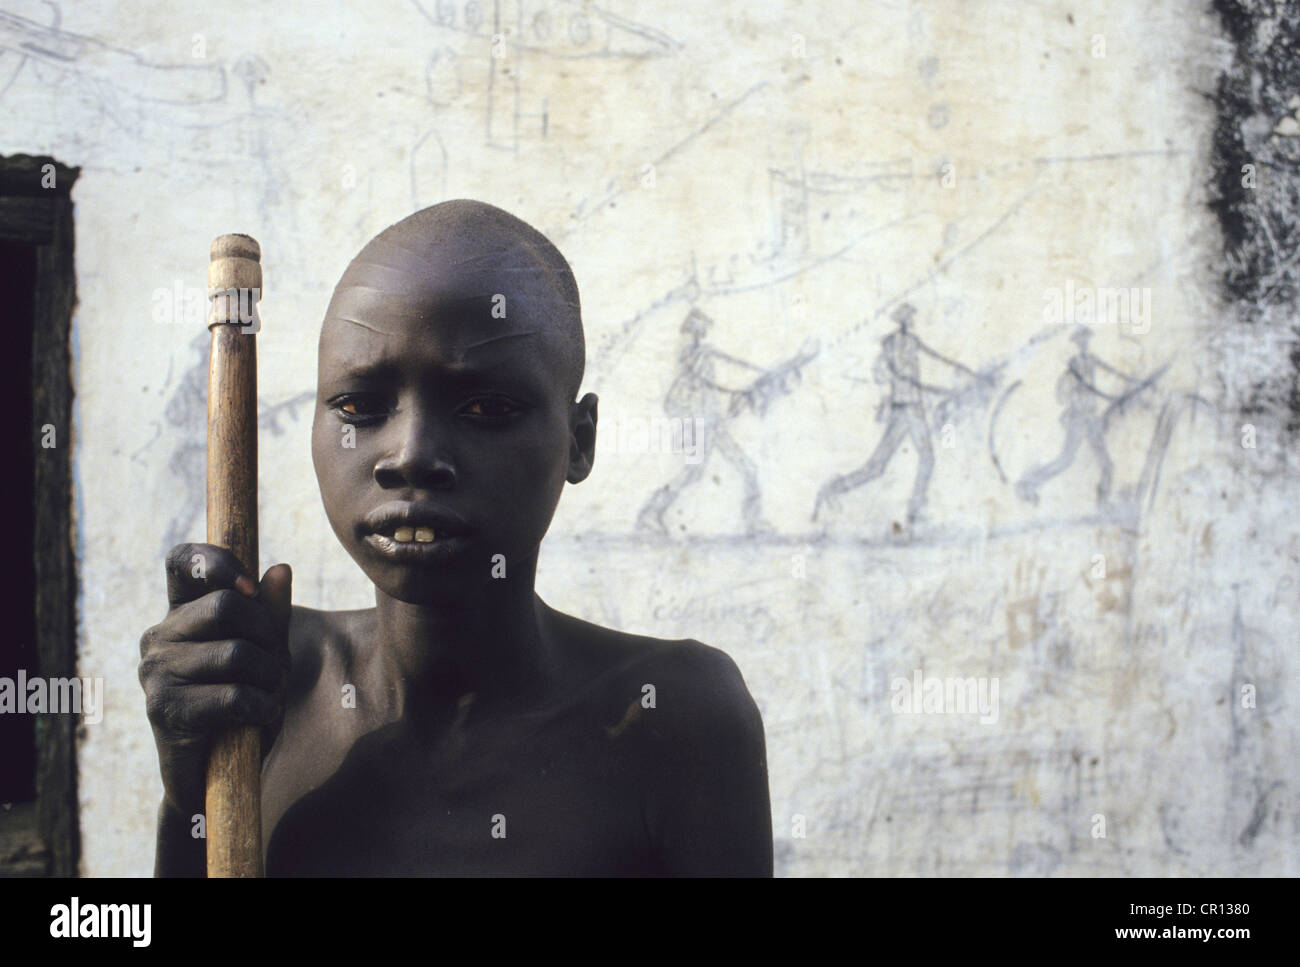 A Dinka boy barely able to stand due to starvation at Thiet feeding camp in Southern Sudan - Stock Image